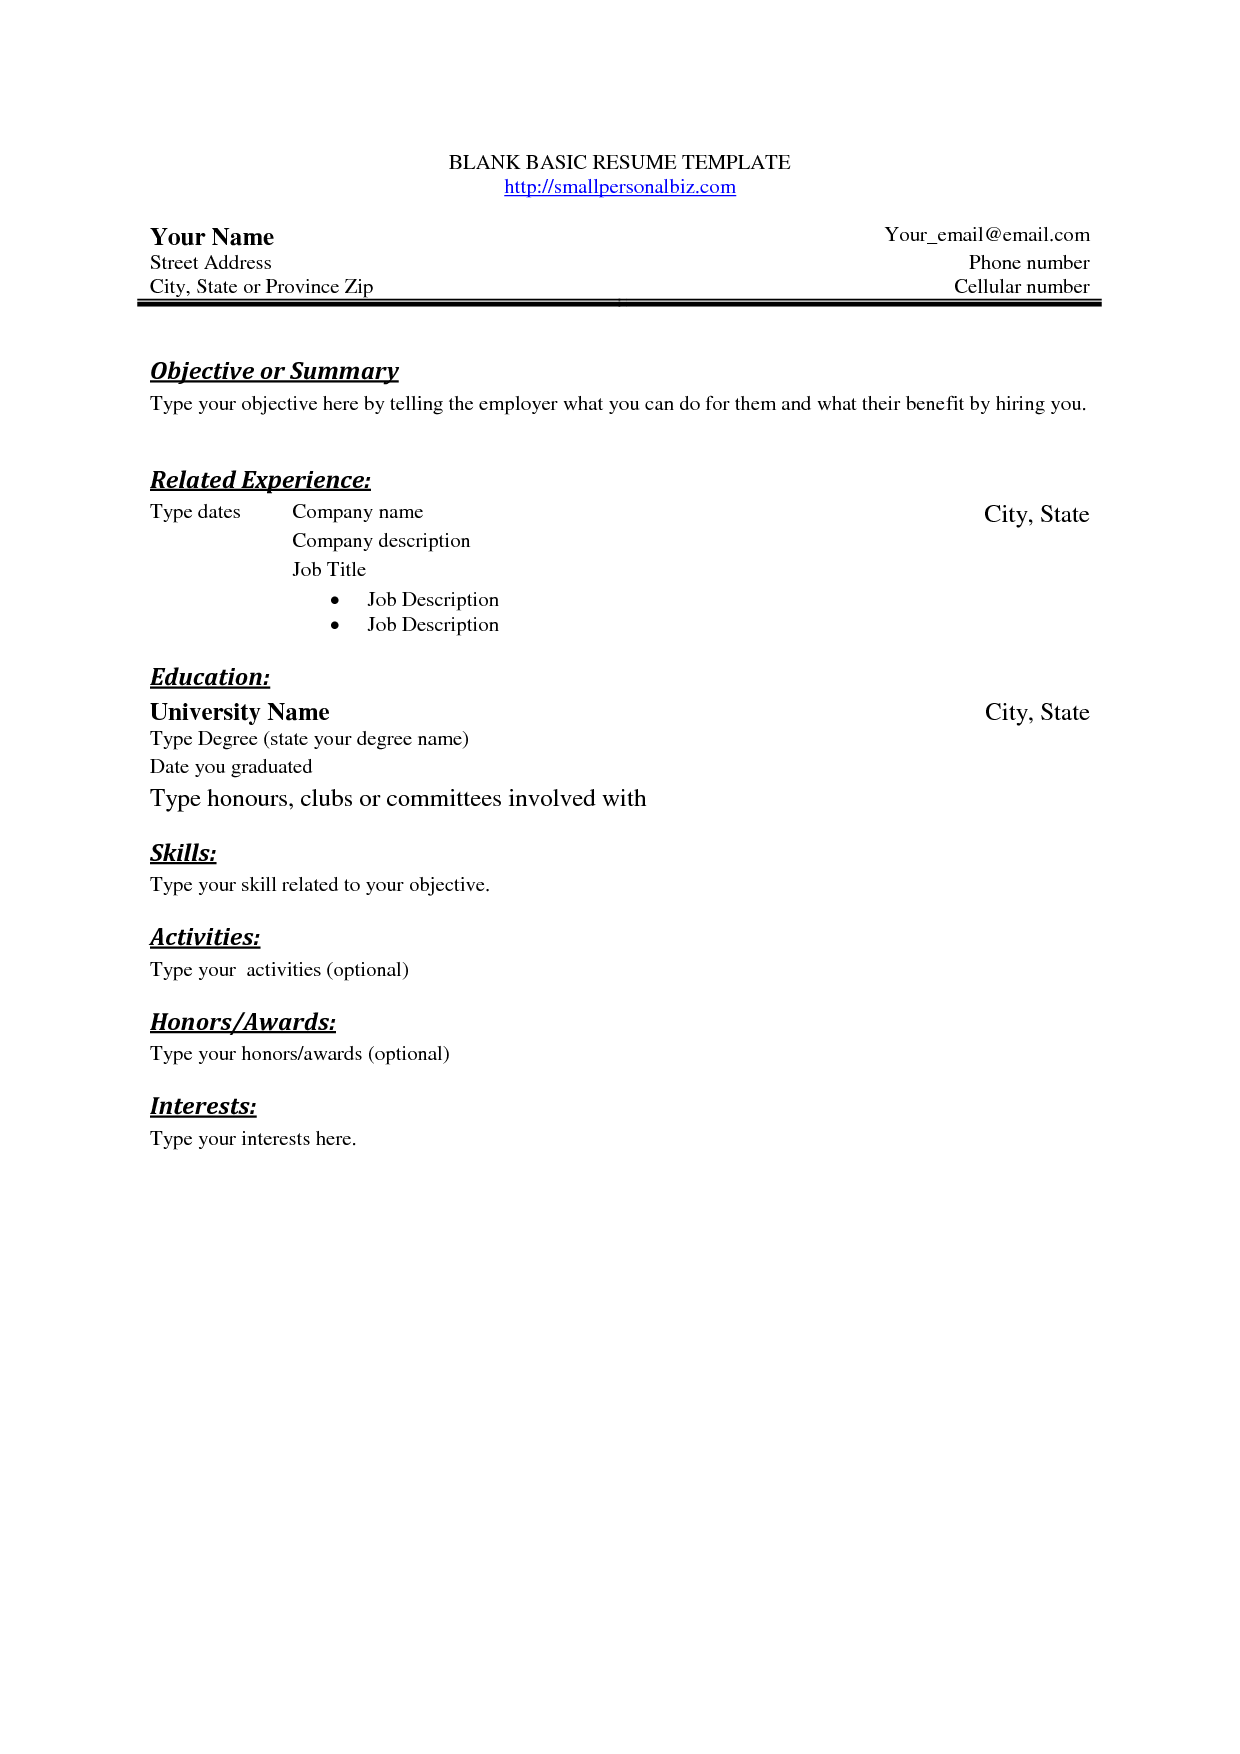 Resume Resume Empty Format free basic blank resume template sample resume